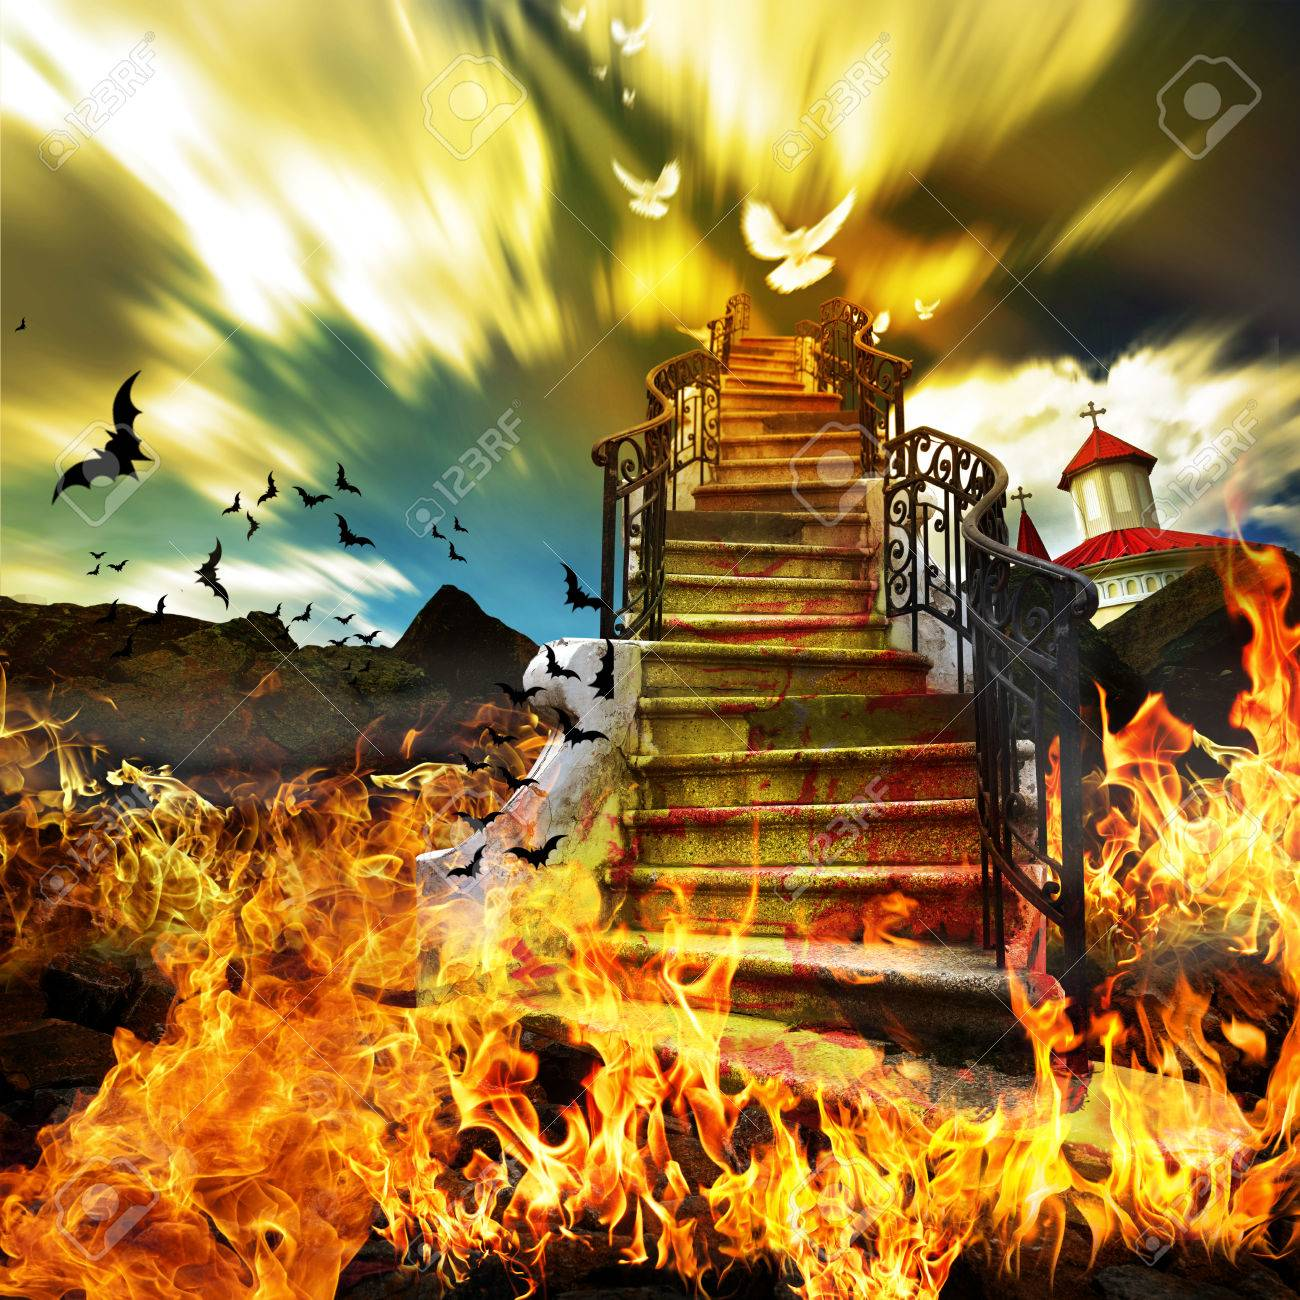 Stairway from Hell to Heaven - 54040240